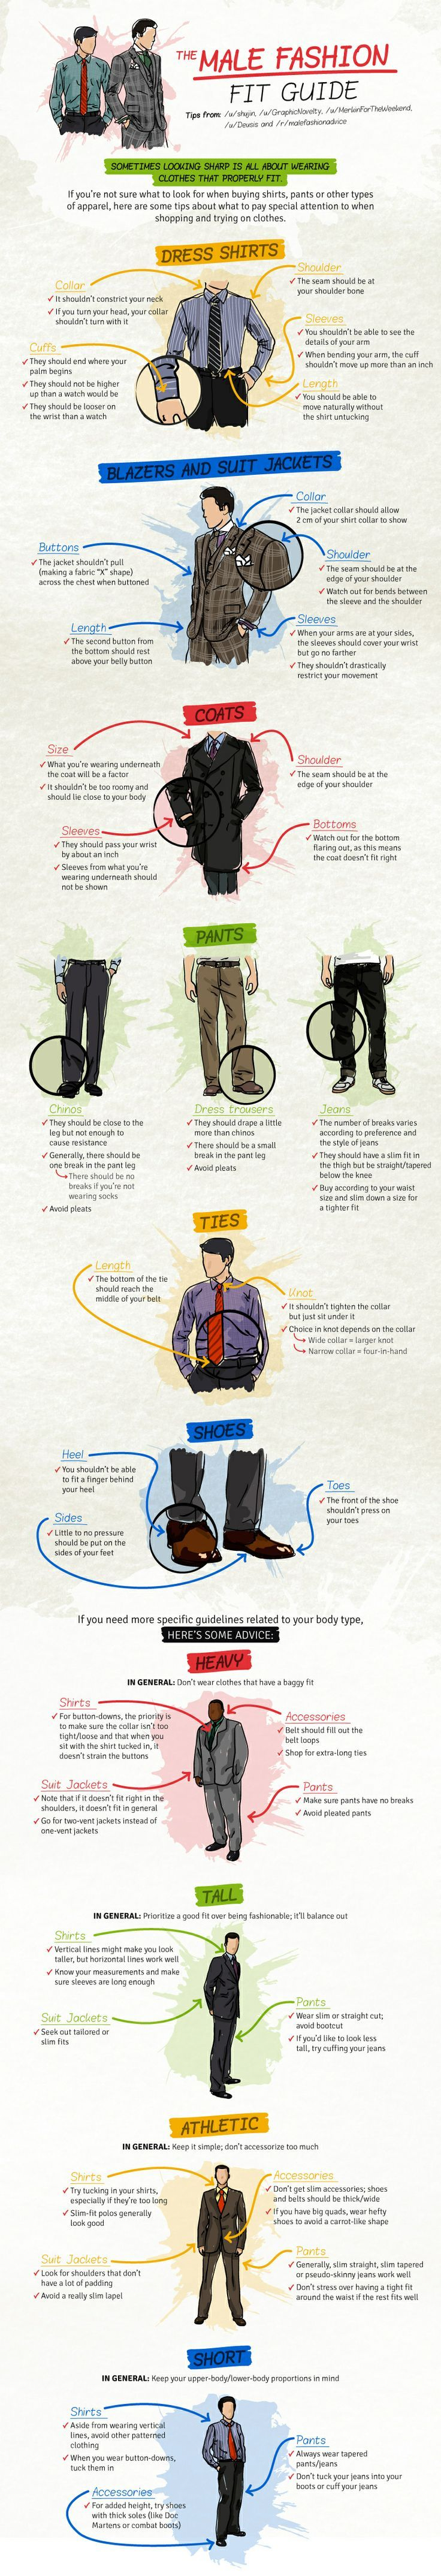 <a href='\/search?q=FashionChecks' class='pintag' title='#FashionChecks search Pinterest' rel='nofollow'>#FashionChecks<\/a>:Everything You Need To Know About Men's Fashion In One Infographic